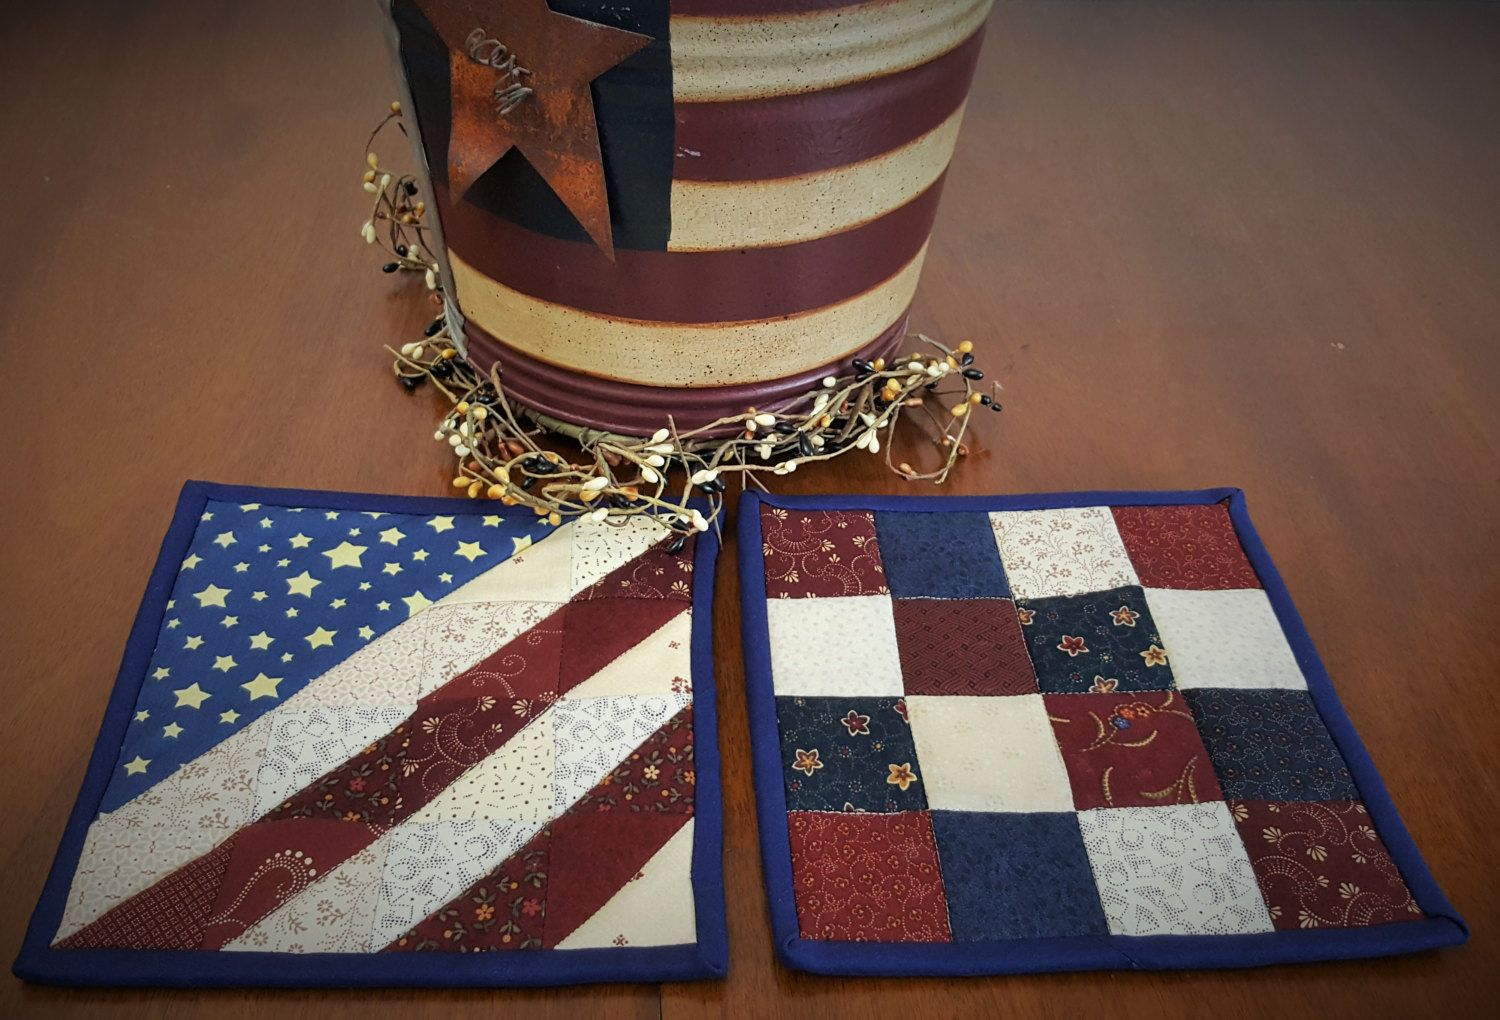 White pot holders for crafts - Quilted Patriotic Country Potholder Americana Quilted Potholder Red White And Blue Potholders Country Quilted Potholders